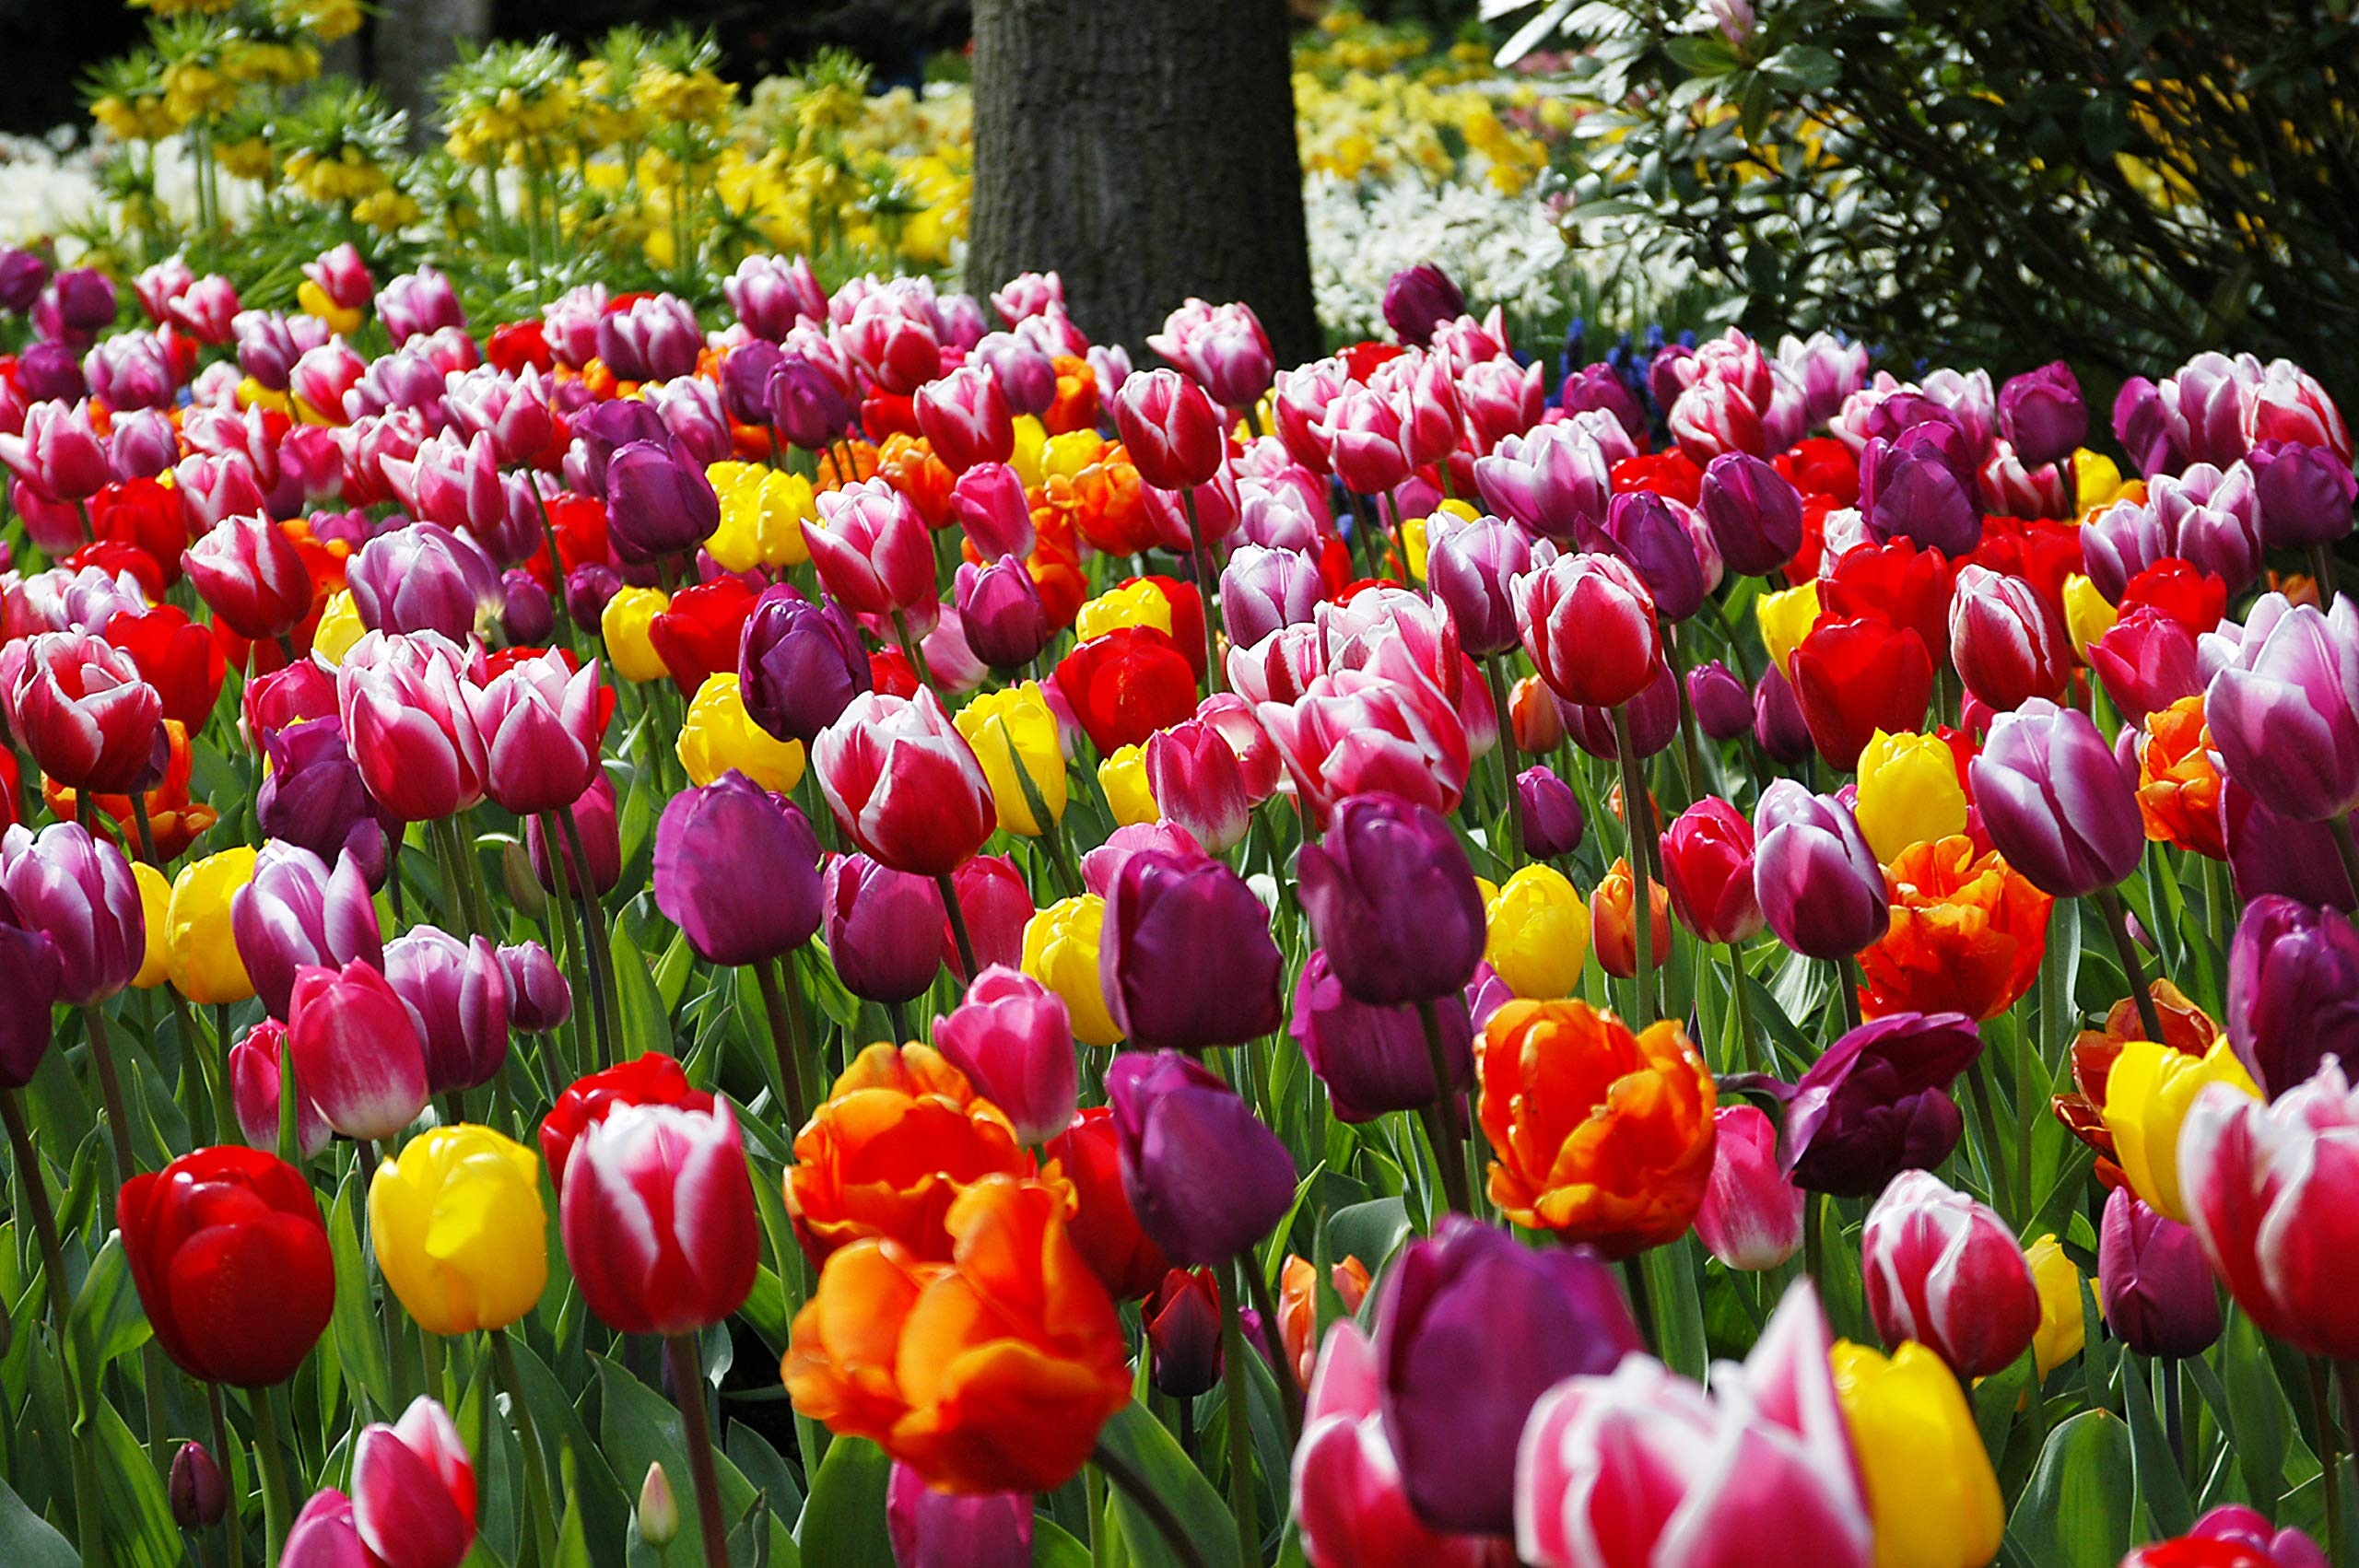 Extra Large Bulb Size - 50 Dutch Grown Tulip Bulbs - Mid-Spring Flowering - Fall Planting - Triumph Tulip - Mixed Colours by Eden Bulbs